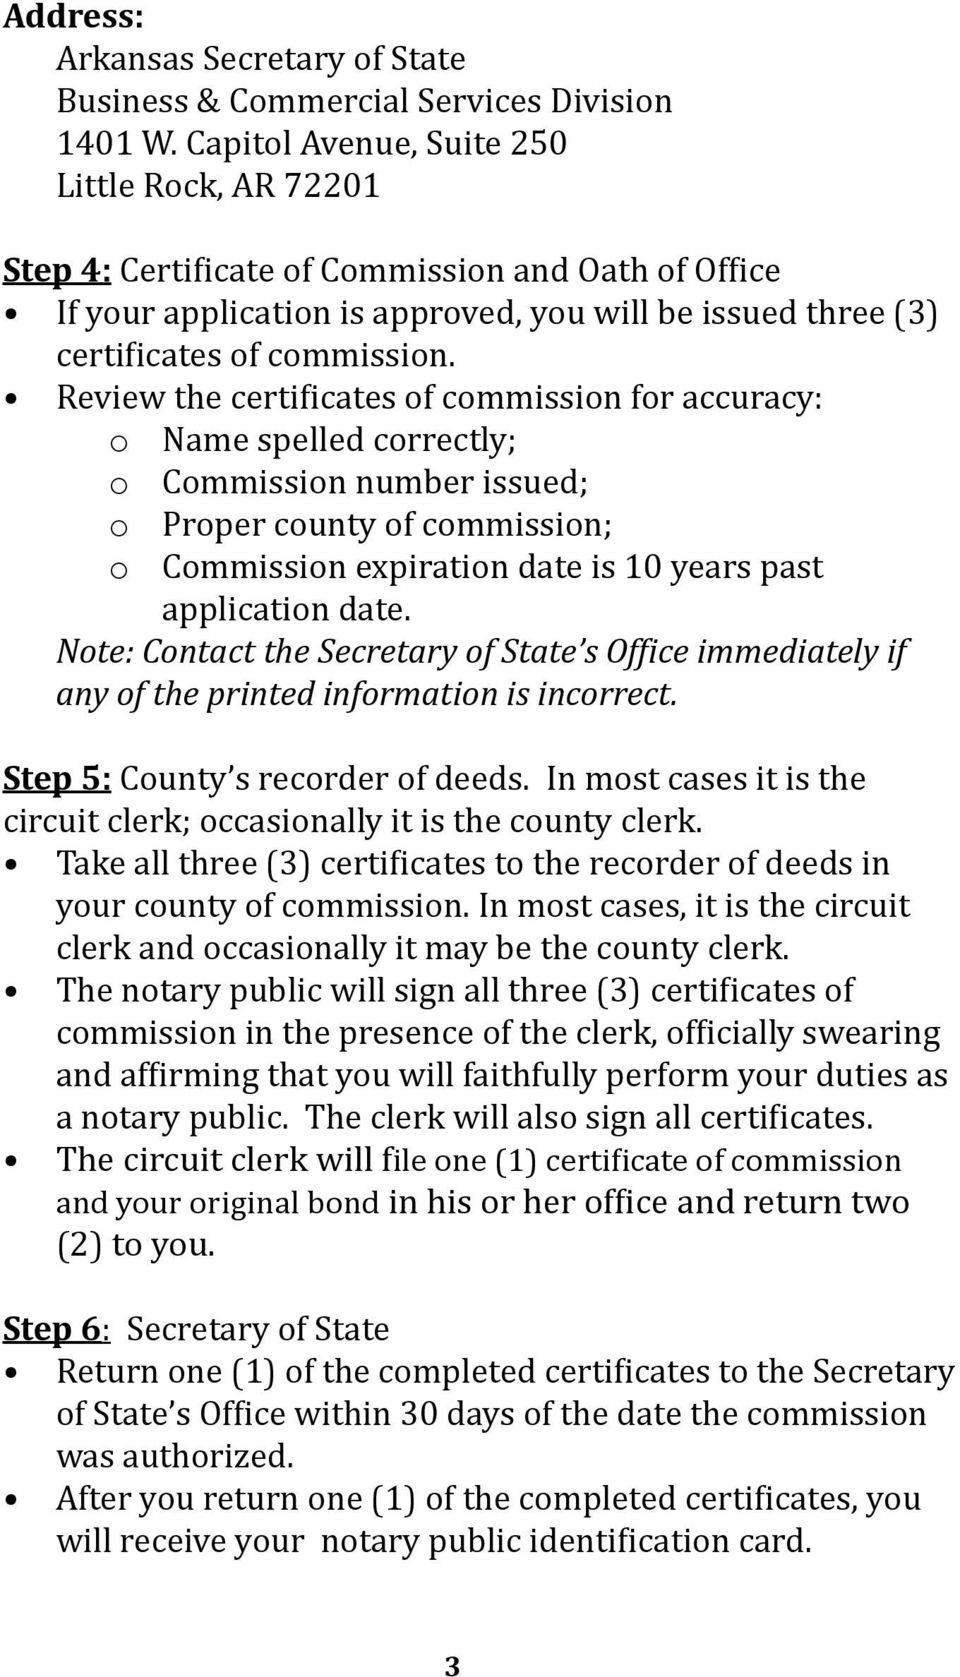 Review the certificates of commission for accuracy: o Name spelled correctly; o Commission number issued; o Proper county of commission; o Commission expiration date is 10 years past application date.